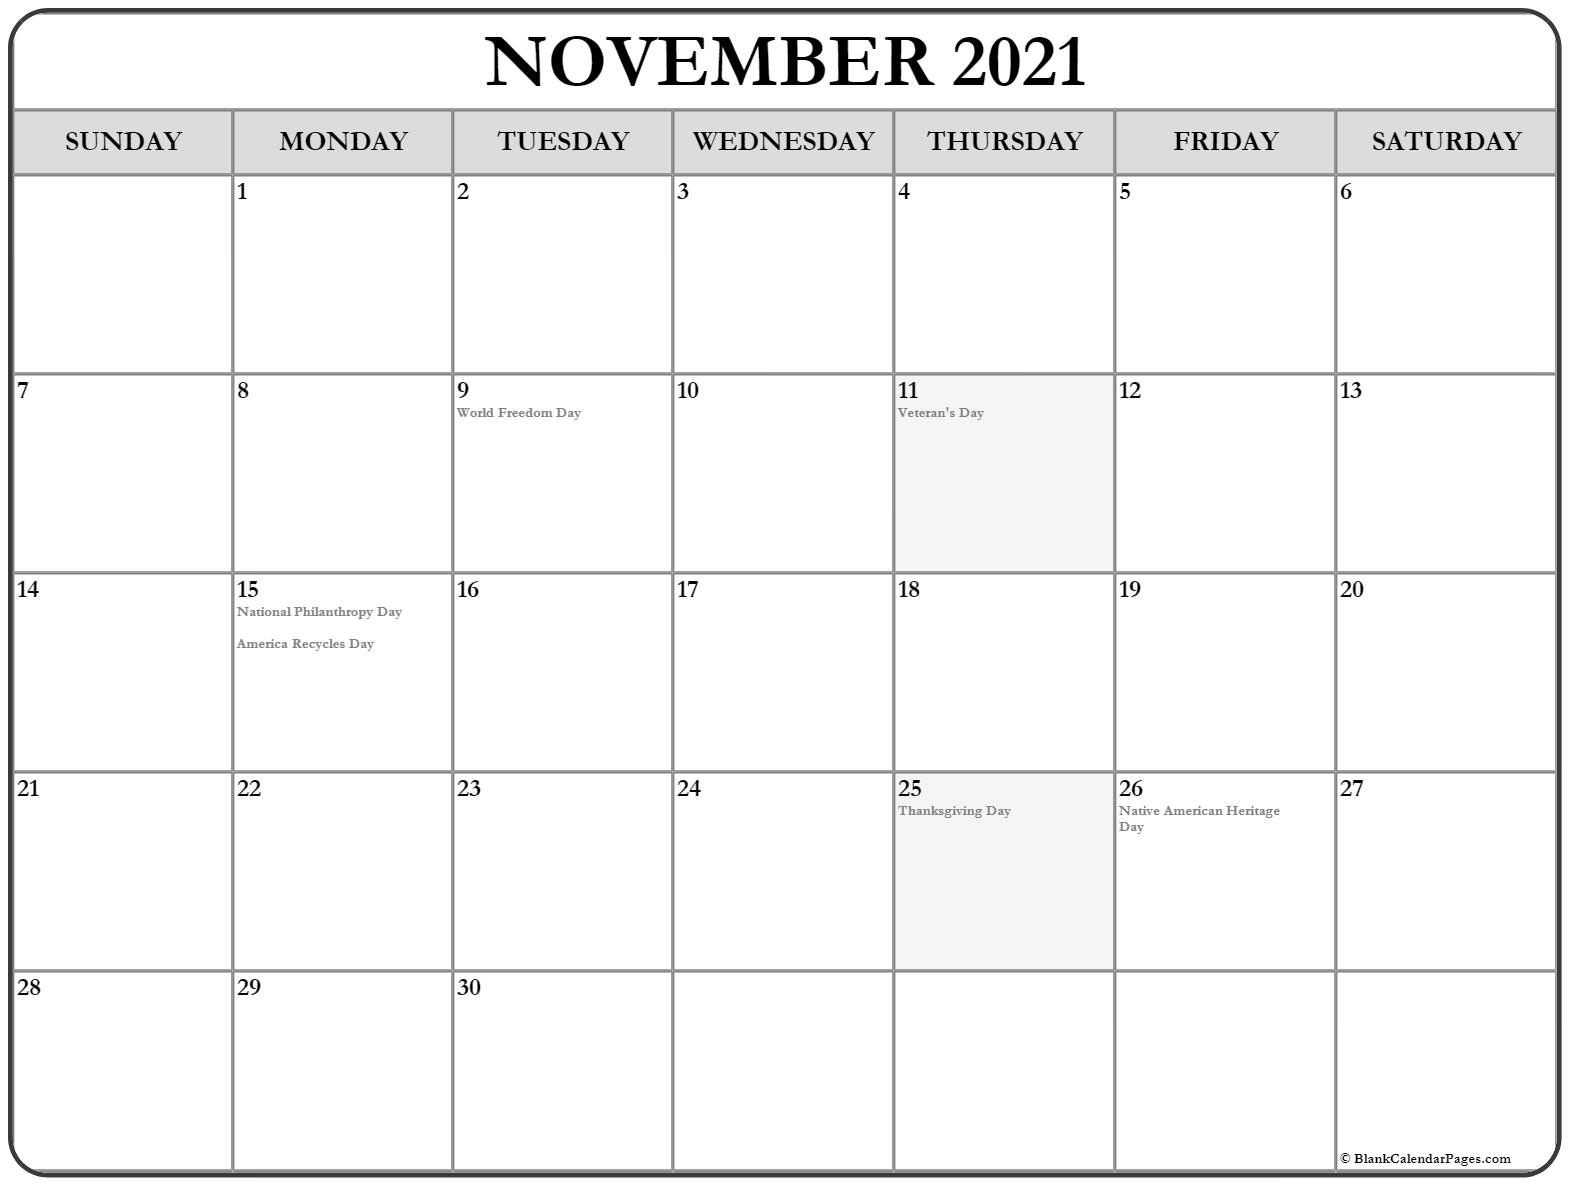 November 2018 calendar with holidays USA. Incluides US federal holidays and observations